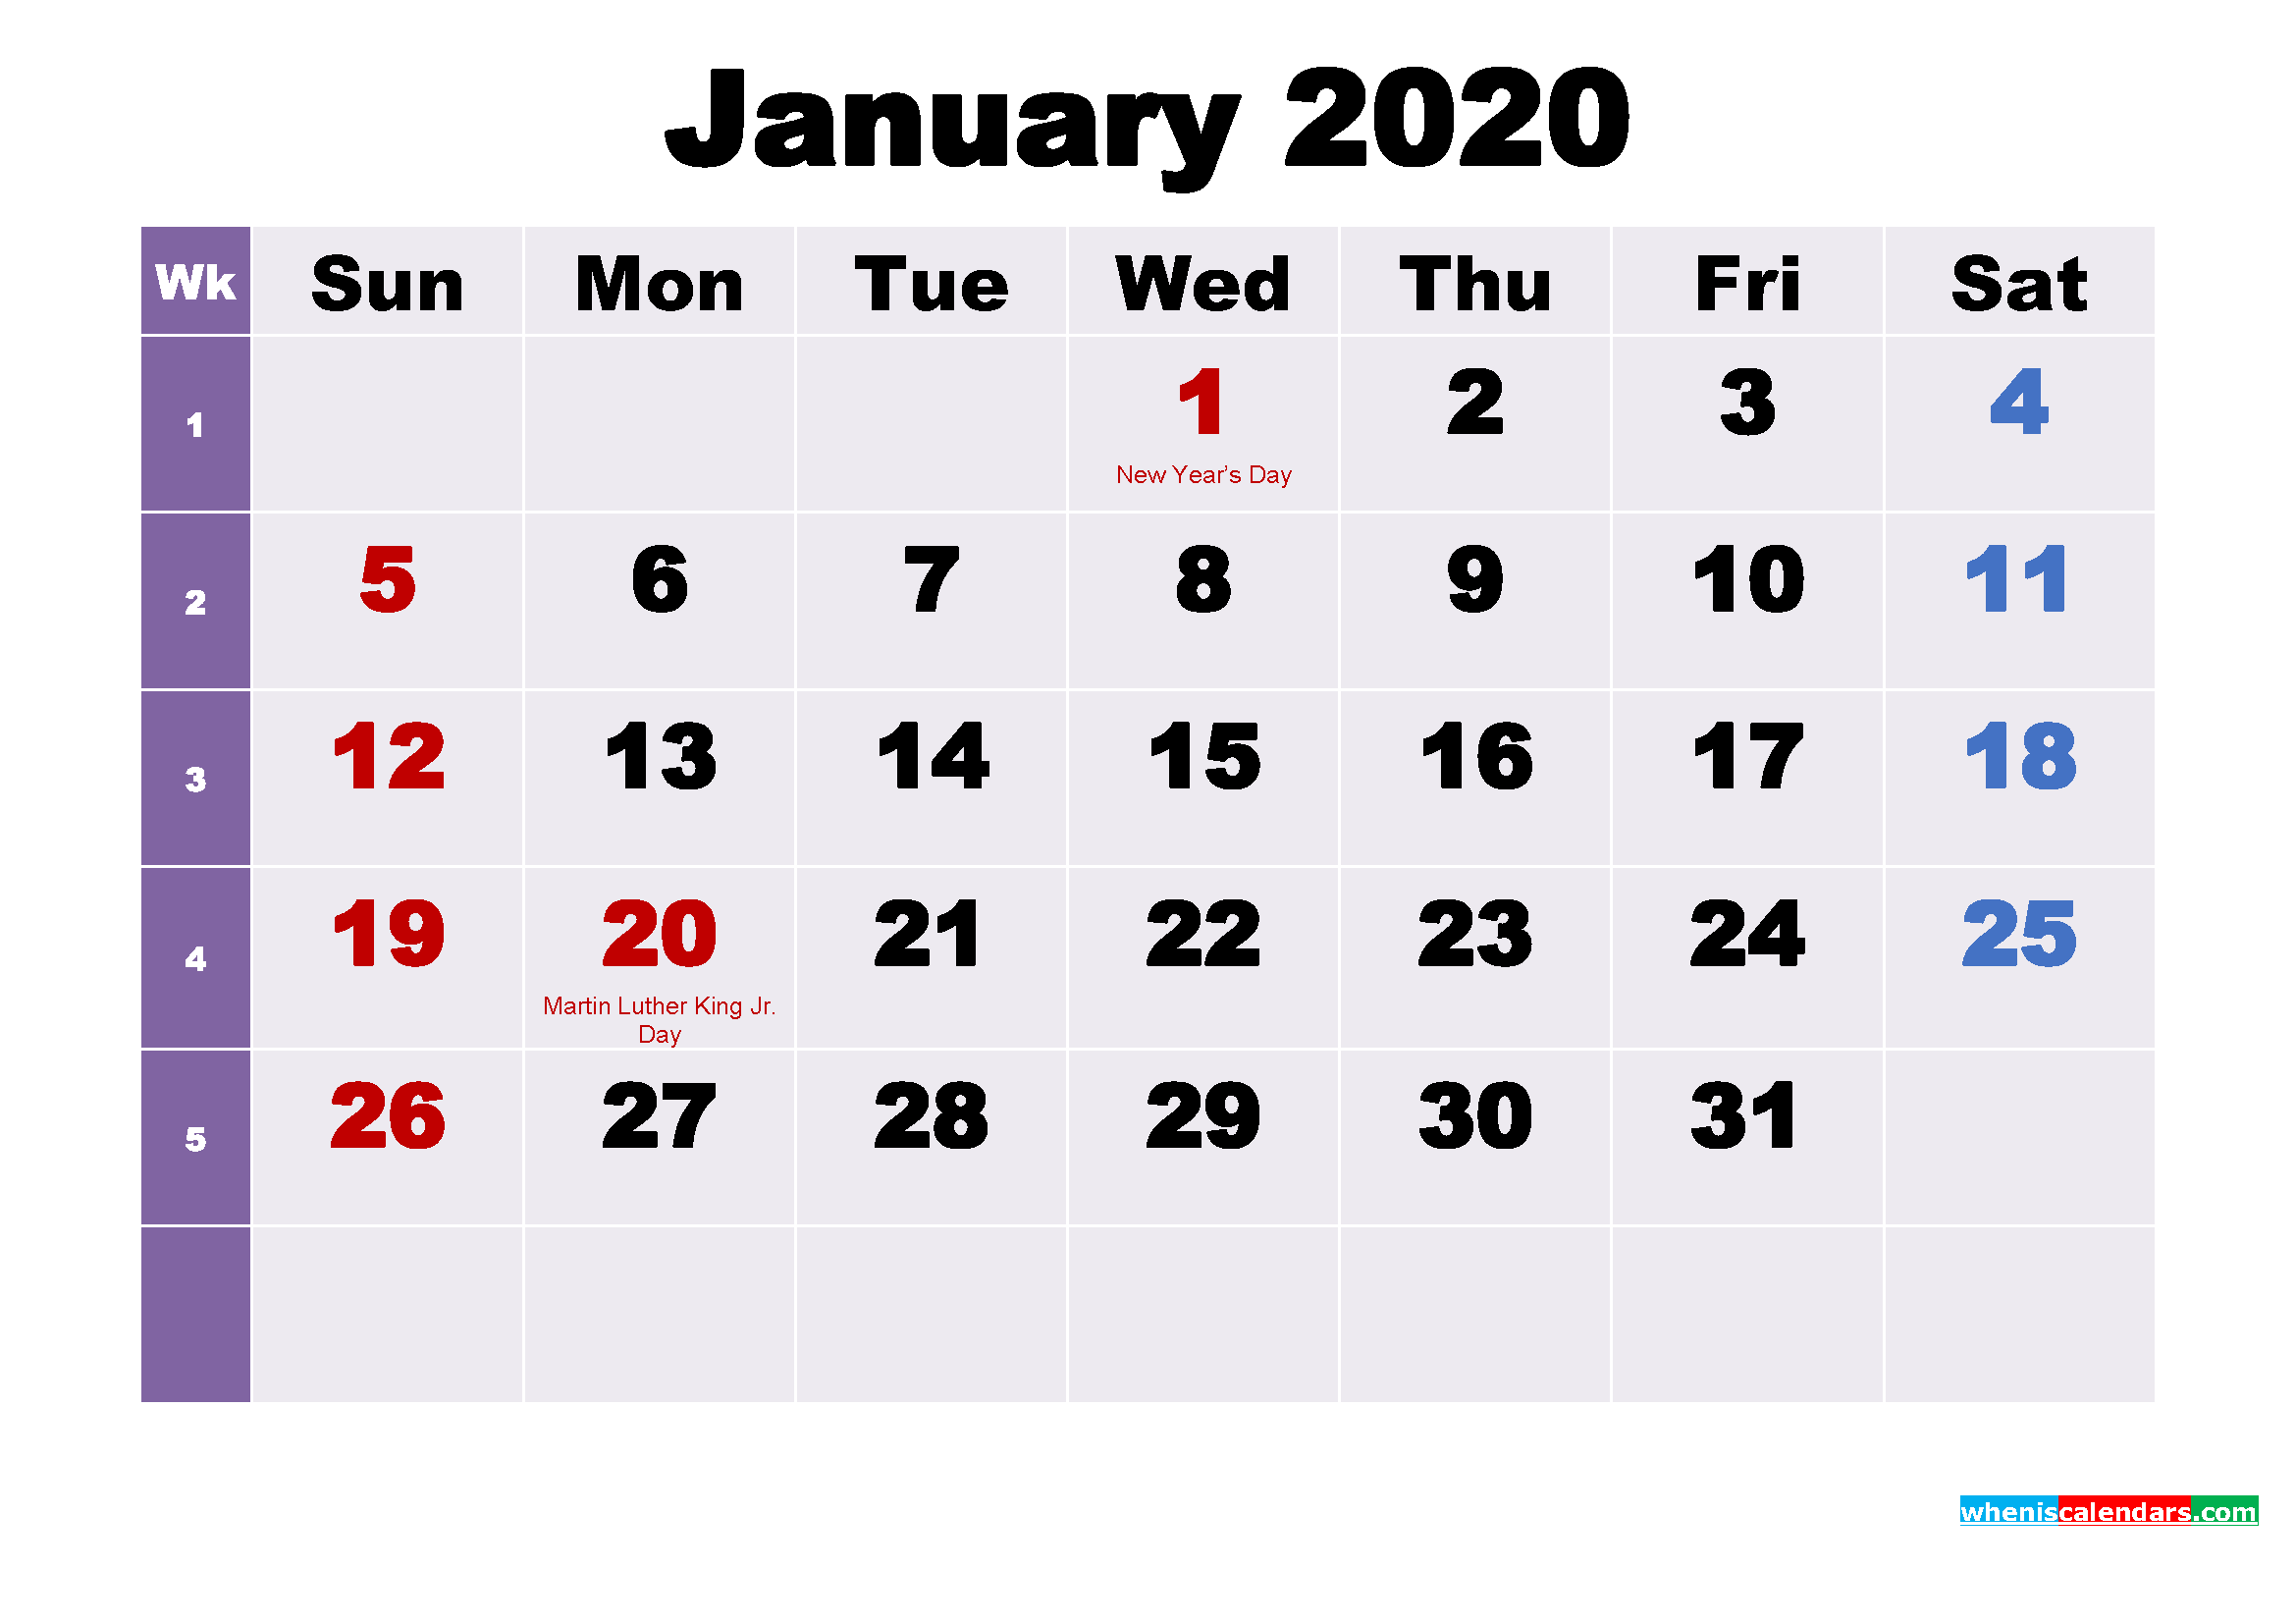 January 2020 Desktop Calendar Free Download